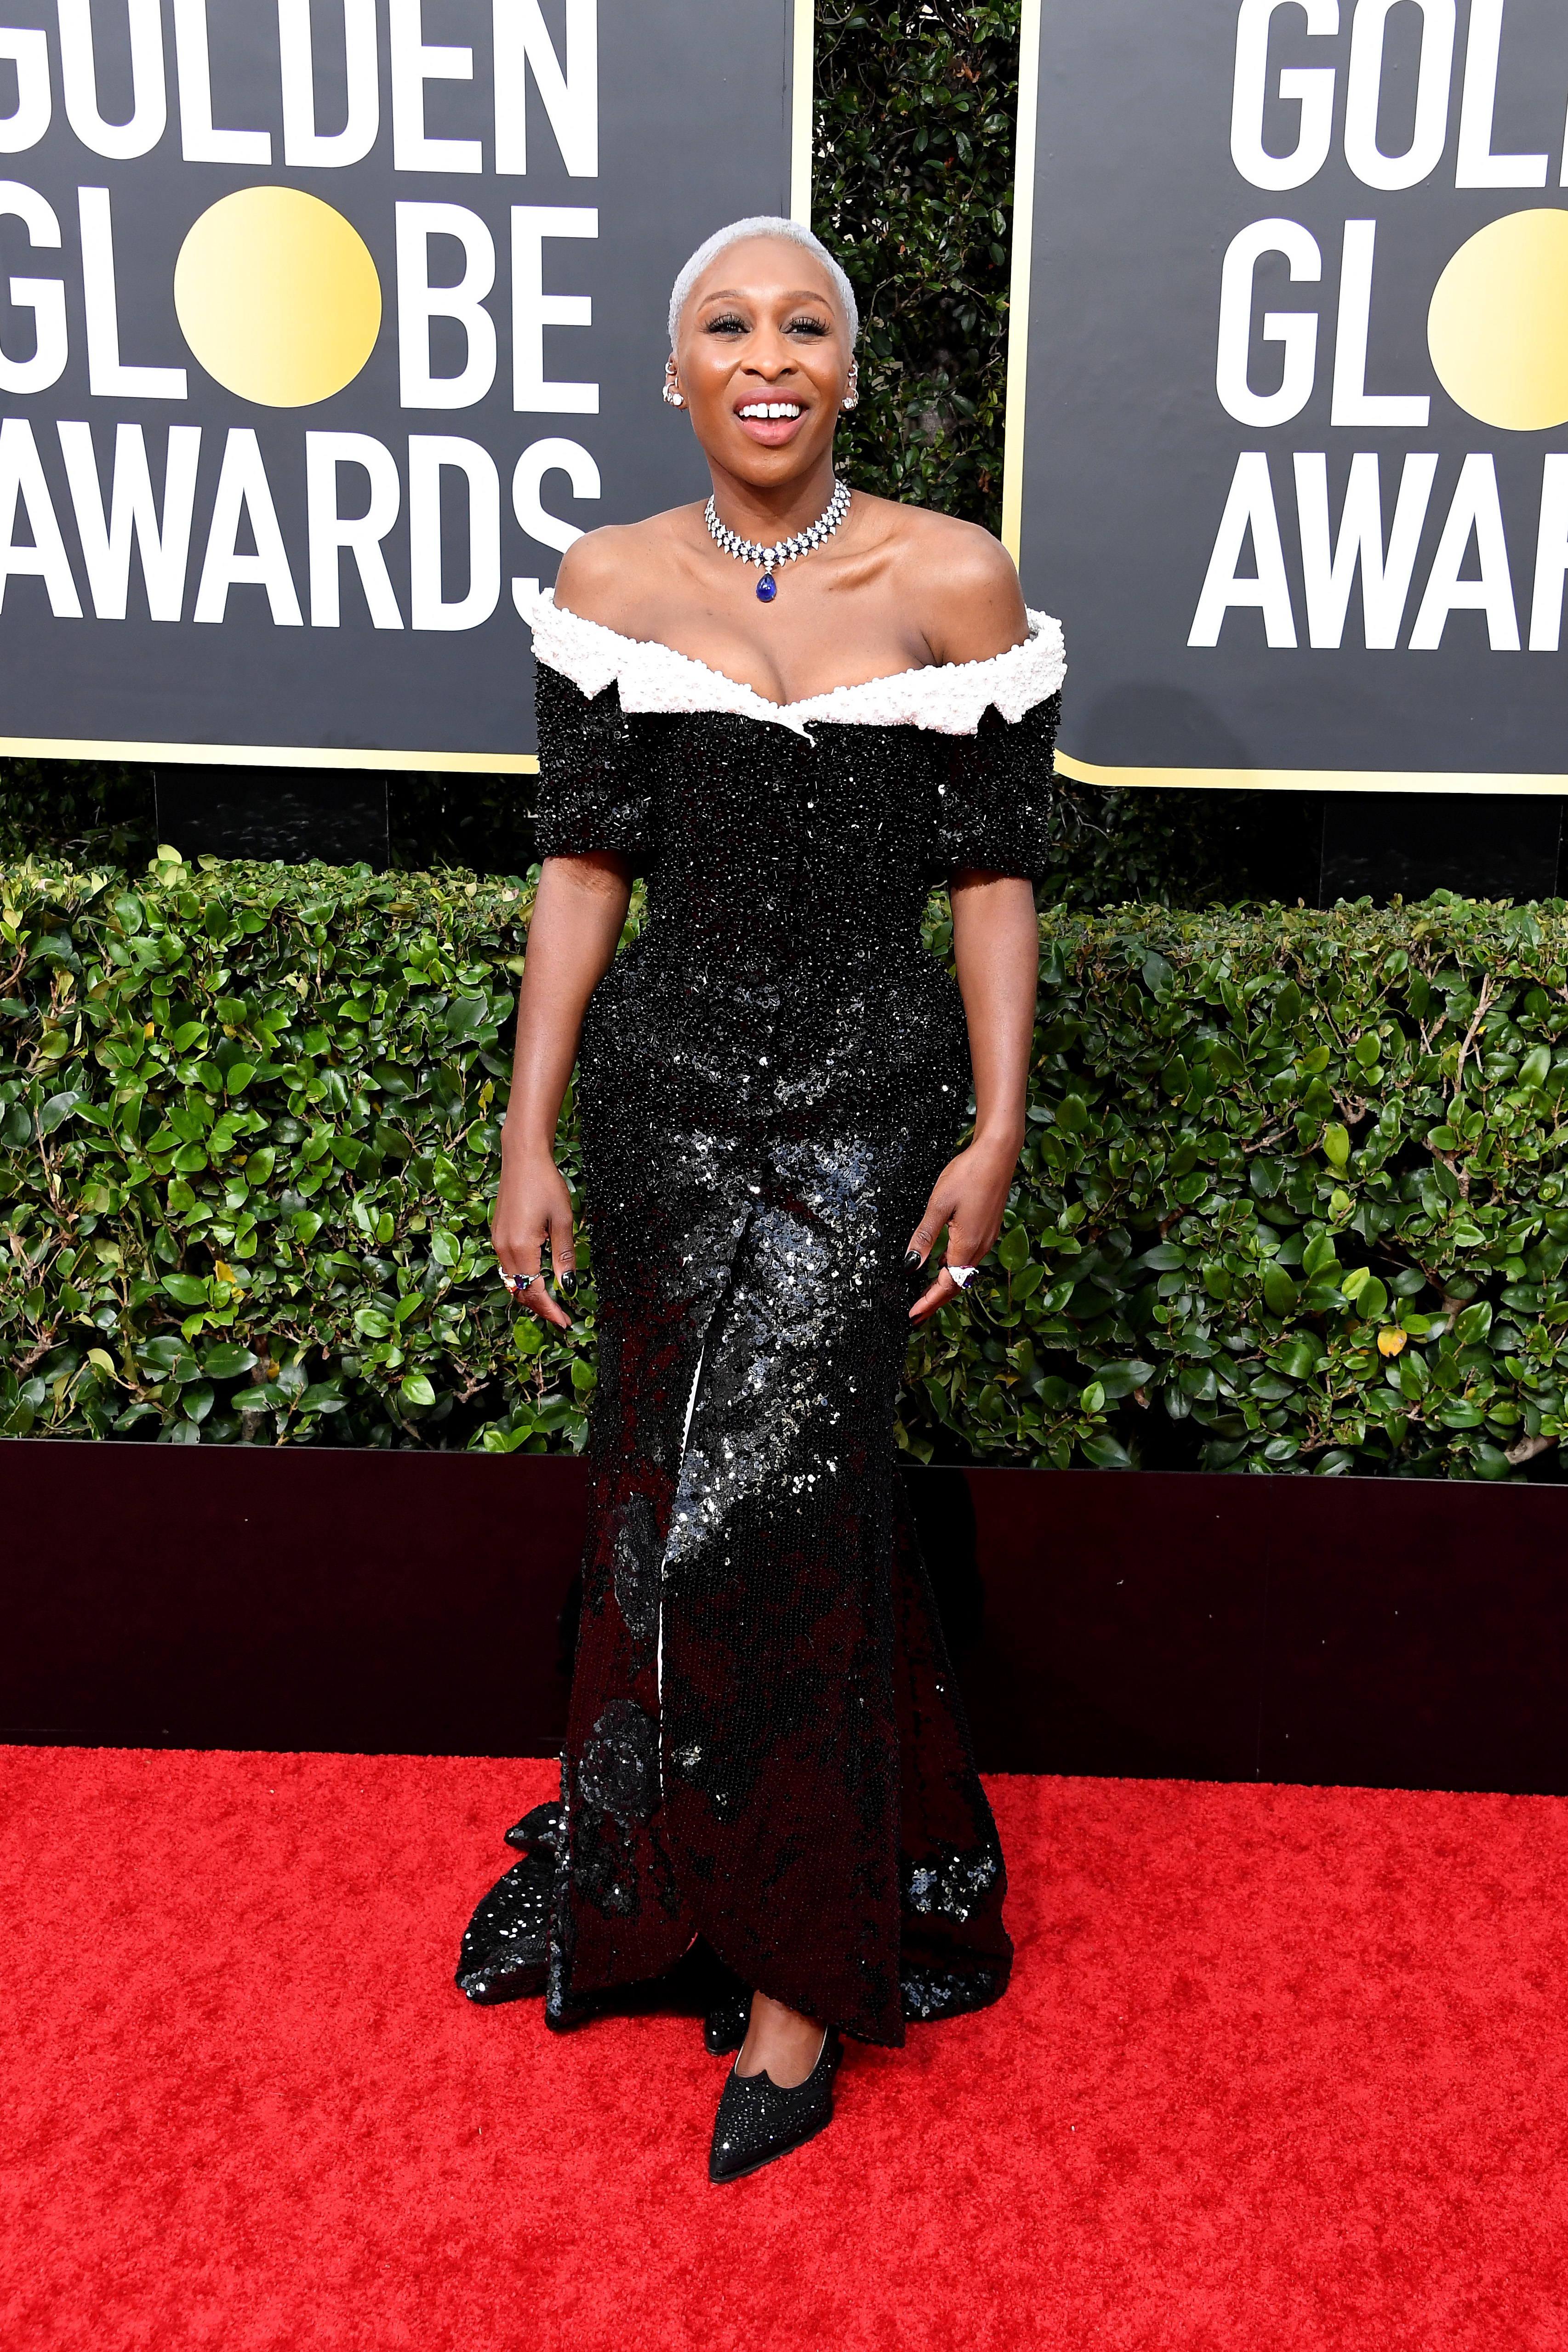 BEVERLY HILLS, CALIFORNIA - JANUARY 05: Cynthia Erivo attends the 77th Annual Golden Globe Awards at The Beverly Hilton Hotel on January 05, 2020 in Beverly Hills, California. (Photo by Steve Granitz/WireImage)